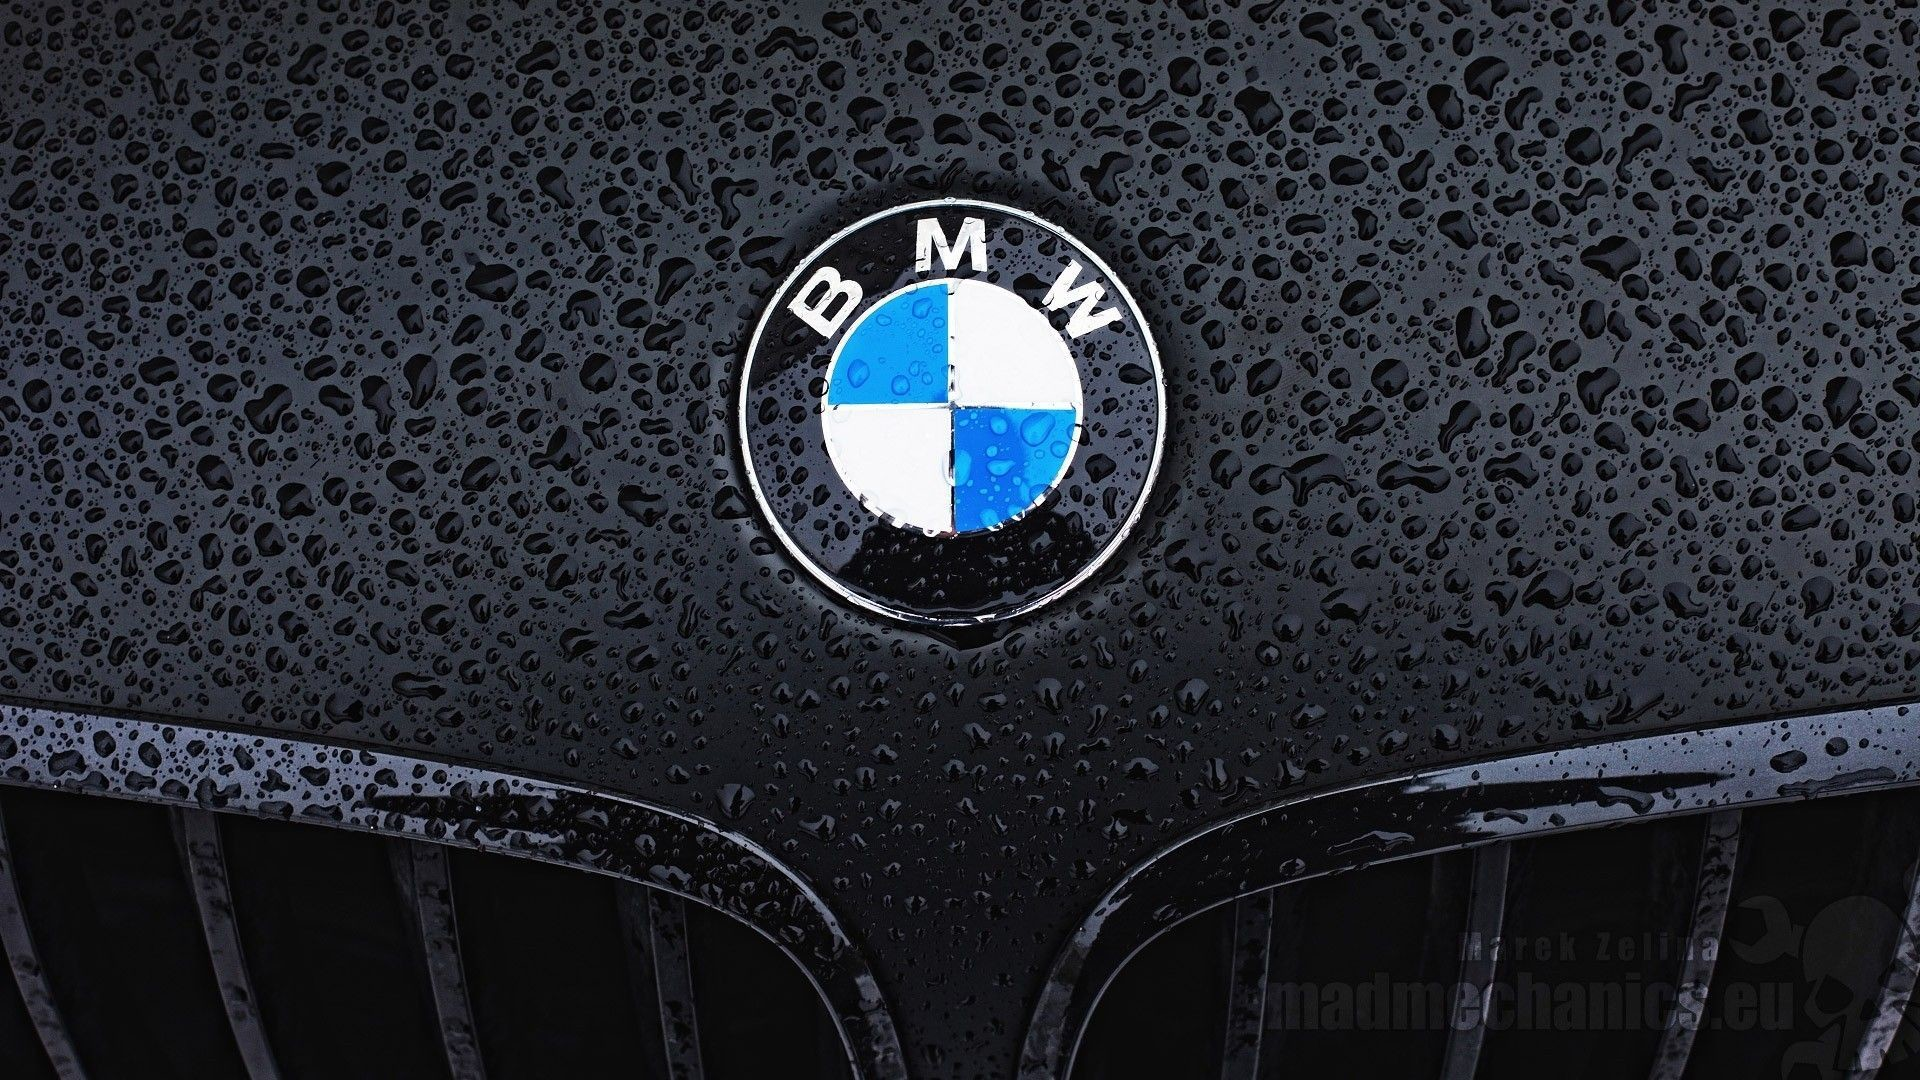 BMW M Logo Wallpapers – Wallpaper Cave